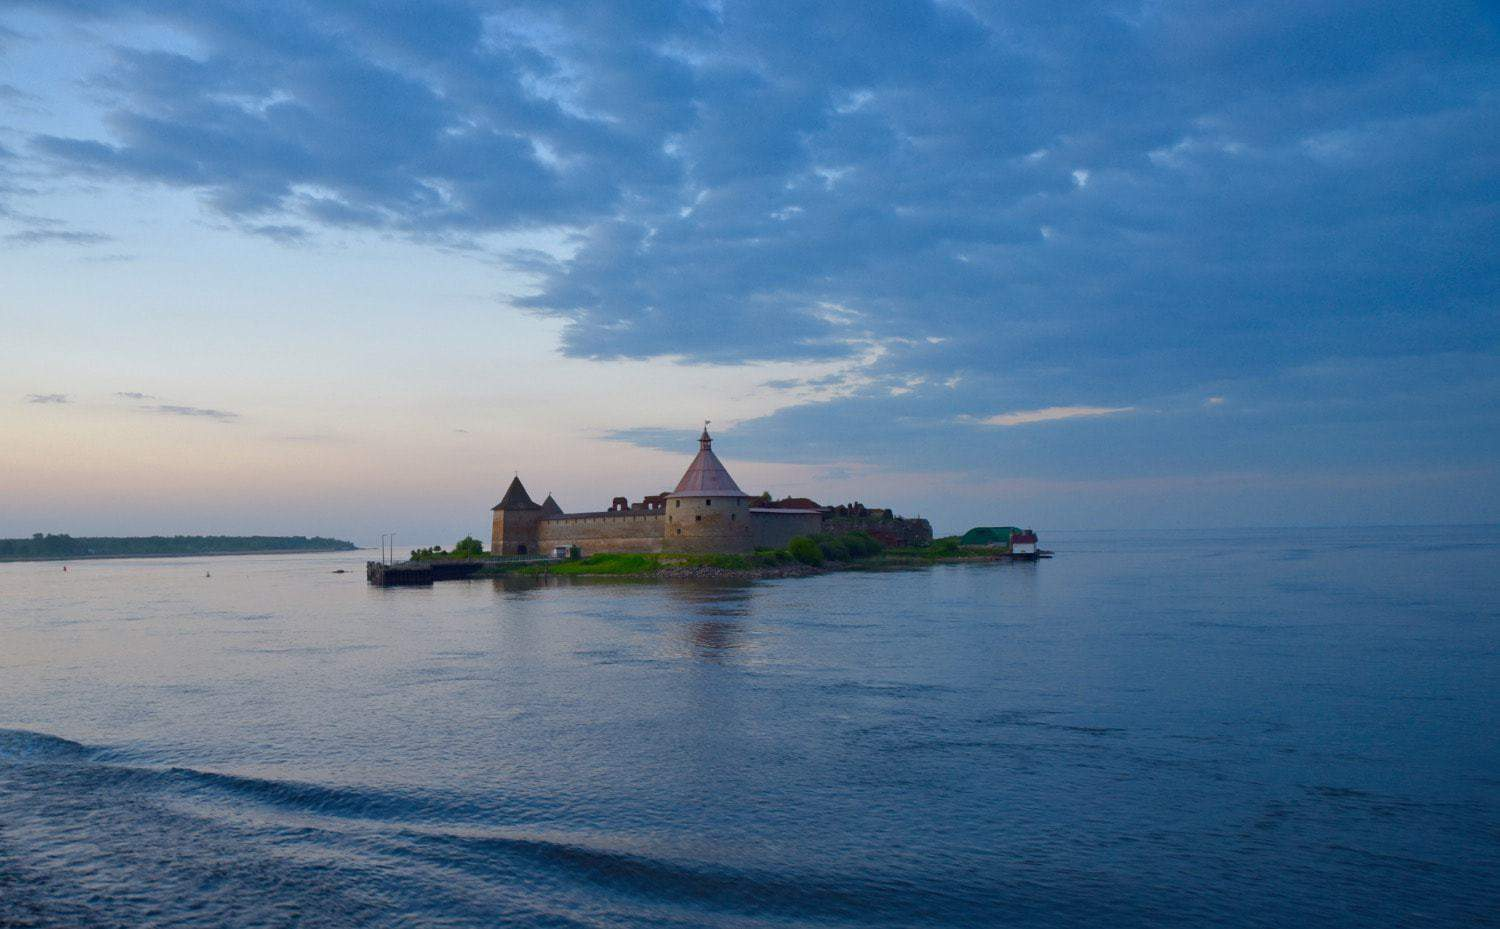 Fortress of Schlusselburg Russia which sits in the middle of a lake.  best things to do in russia is to cruise past these unique russian places to visit